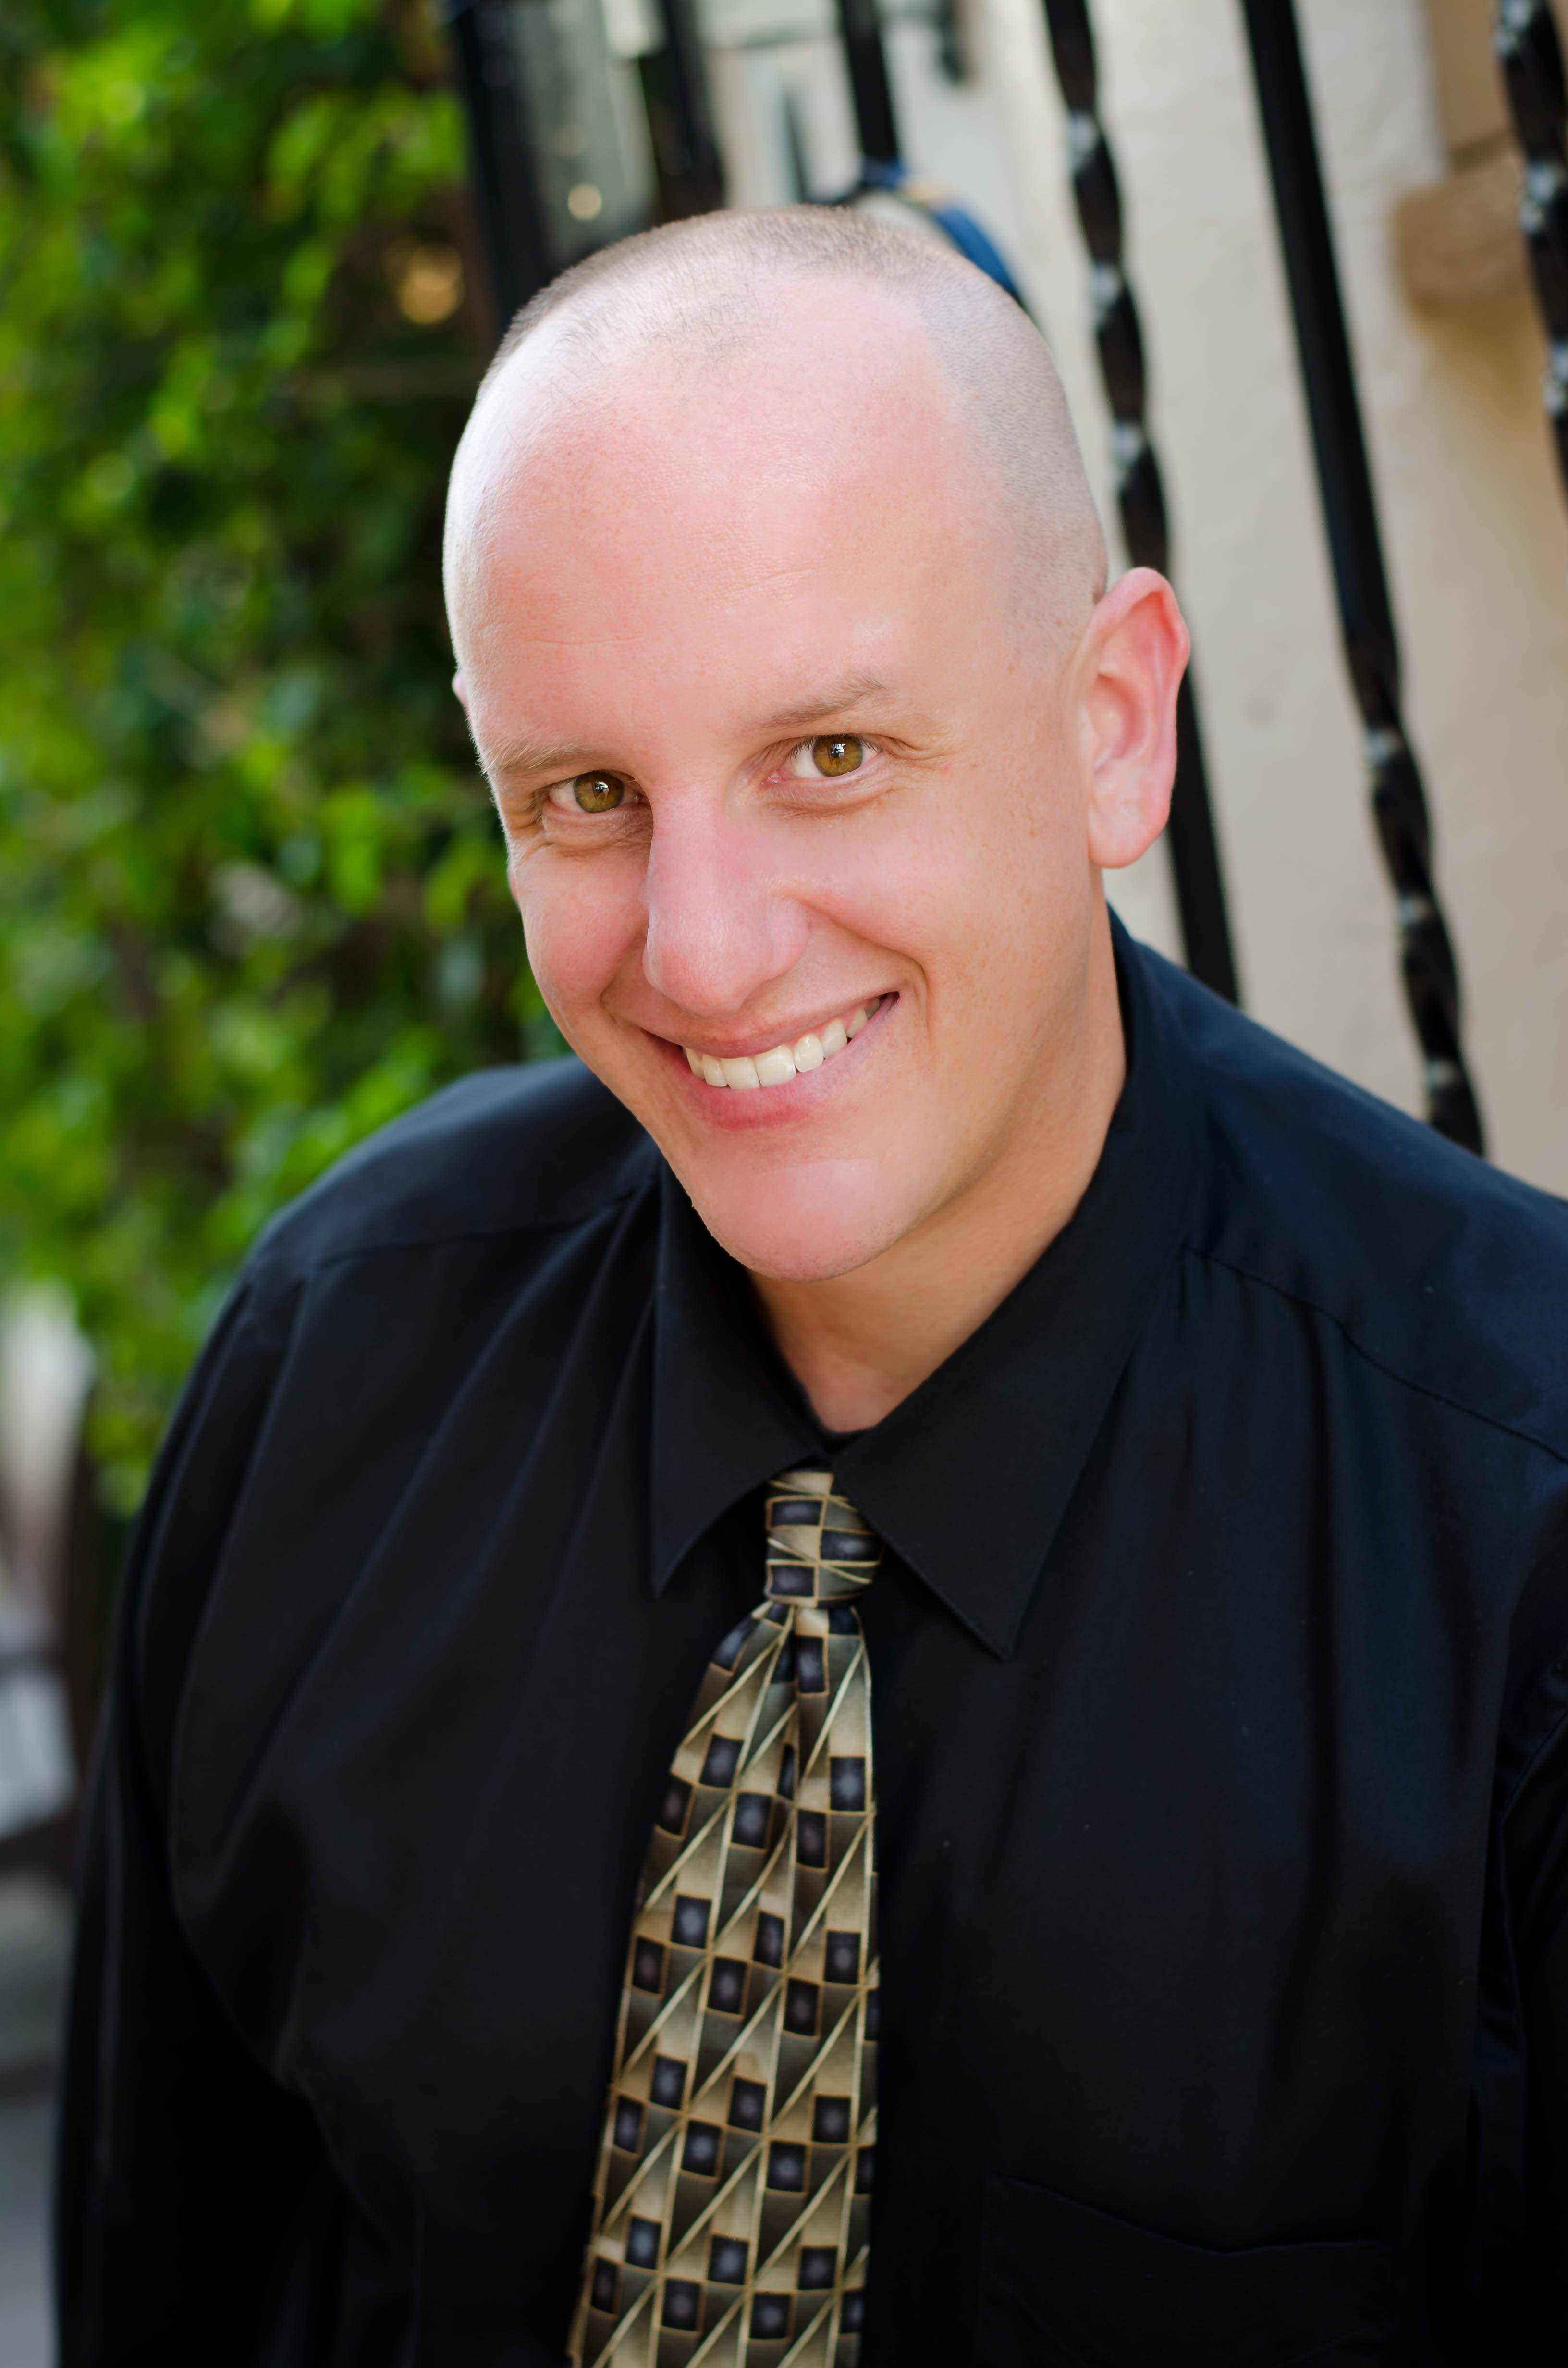 Craig Stratton, MA, LMHC, CRC Licensed Mental Health Counselor & Certified Rehab Counselor